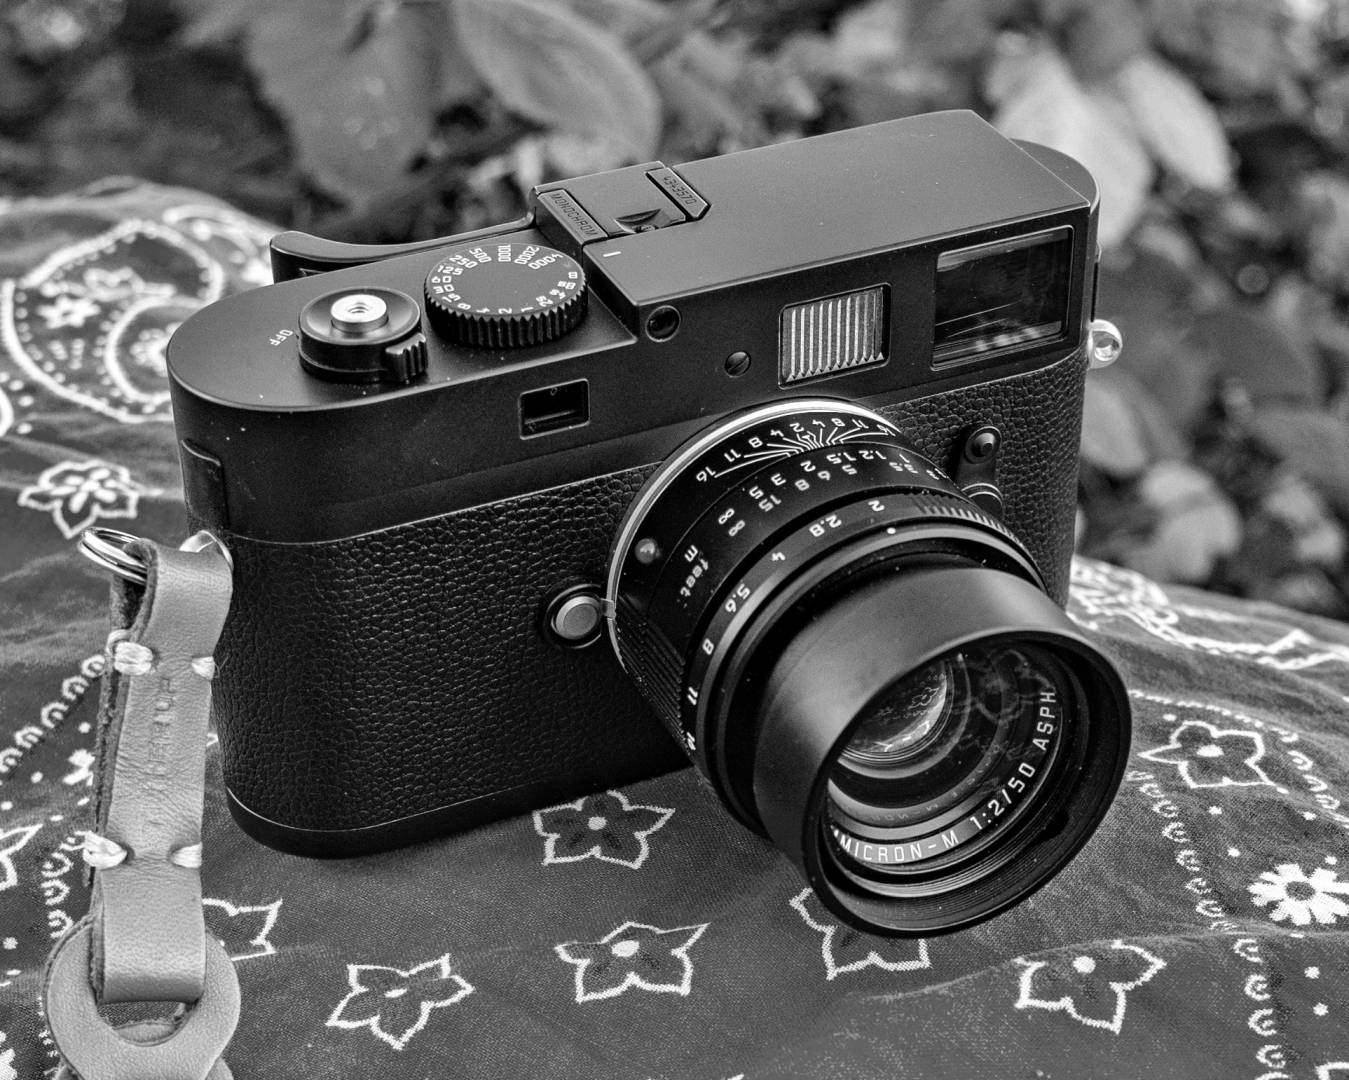 The Mark I Monochrom, introduced in late 2012, is stil highly desirable. This camera is wearing the 50mm Apo-Summicron-M lens which was designed specifically wiht the Monochrom in mind.